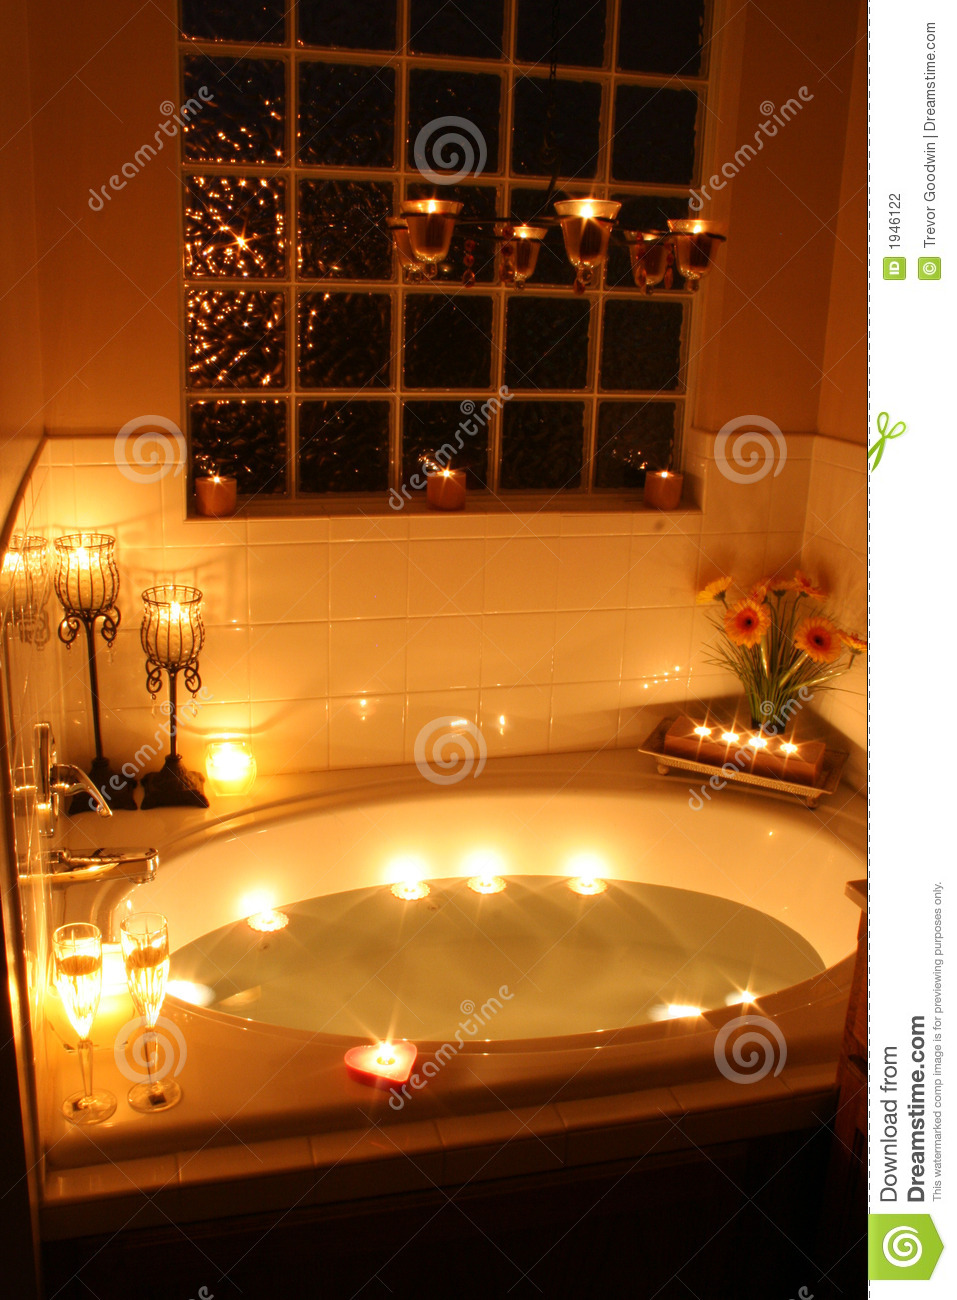 candlelight bath stock photography image 1946122. Black Bedroom Furniture Sets. Home Design Ideas